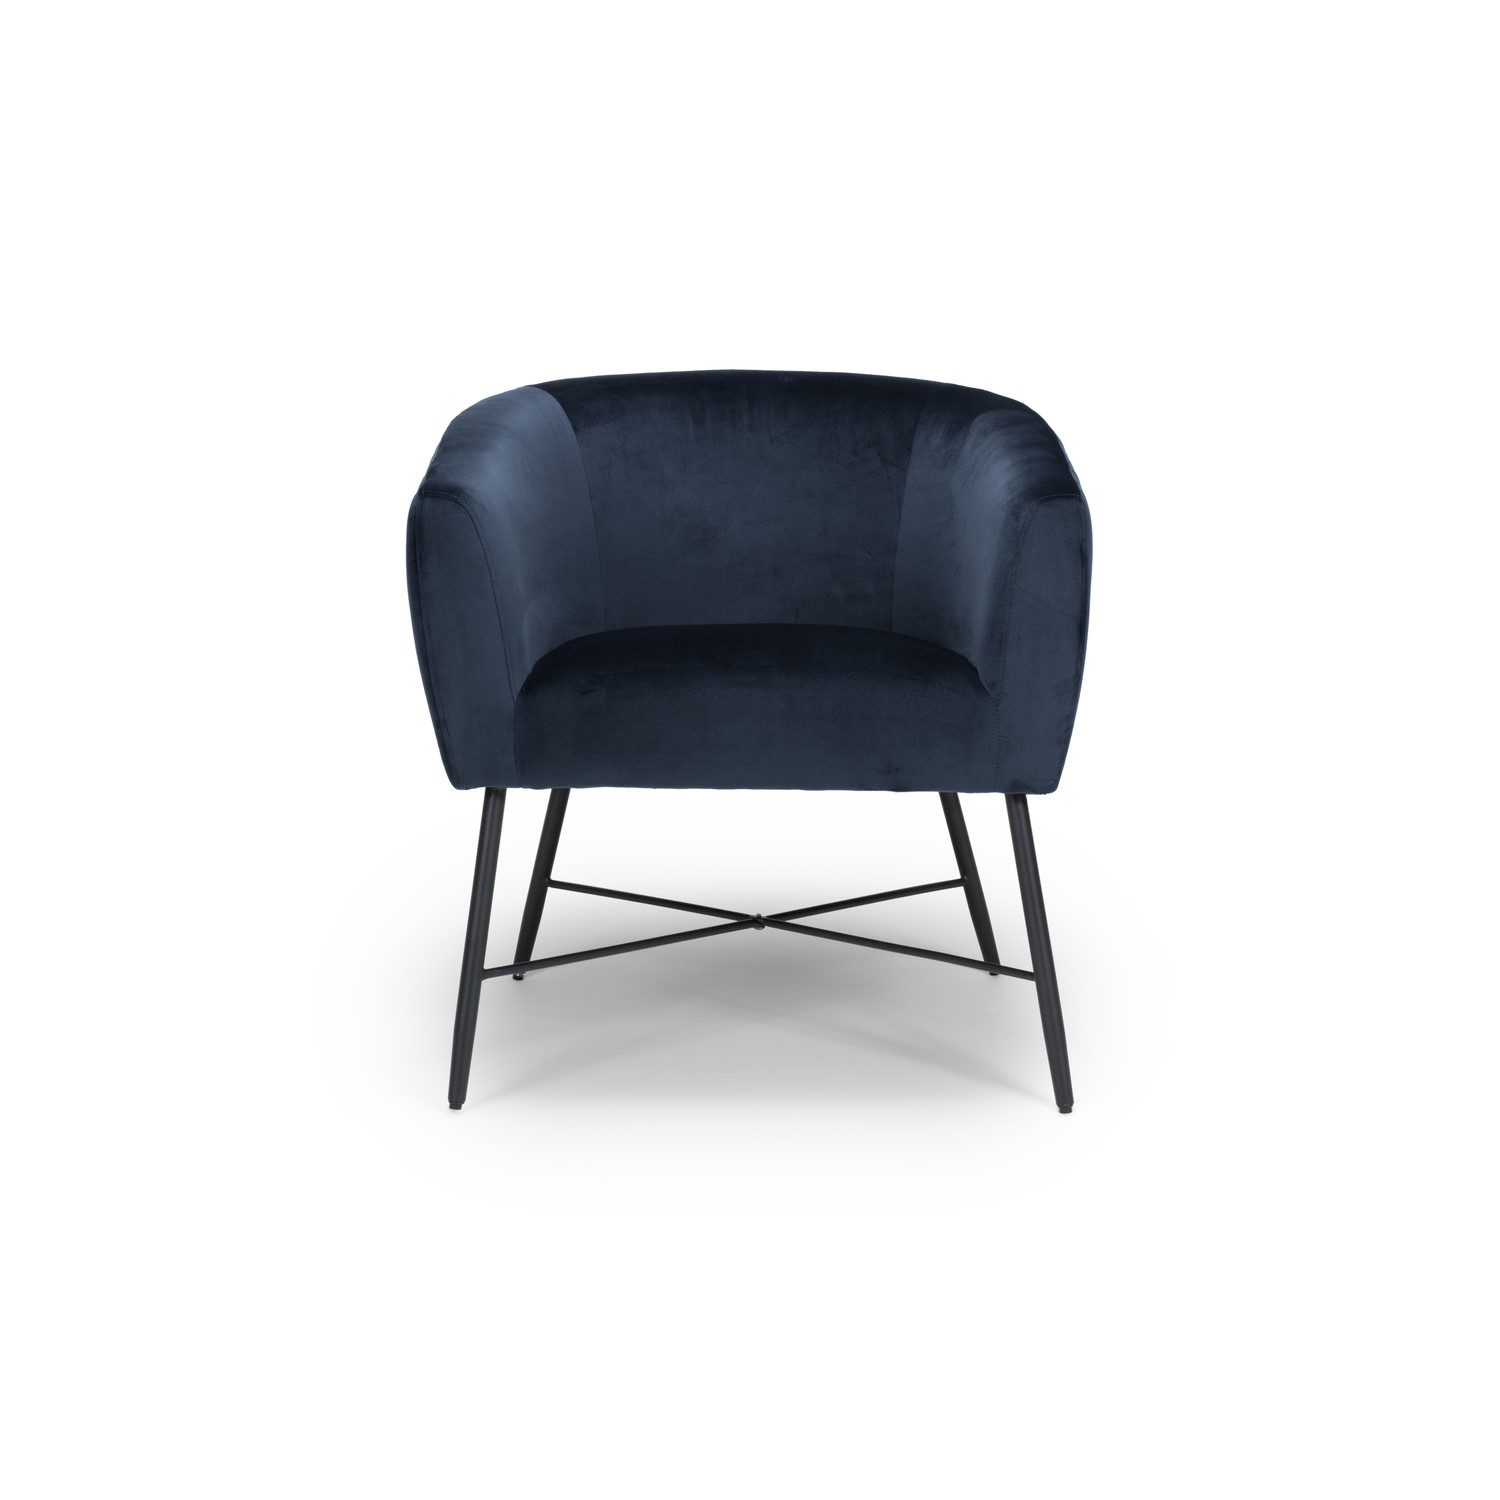 Navy Blue Accent Chair With Black Legs Zara Furniture123